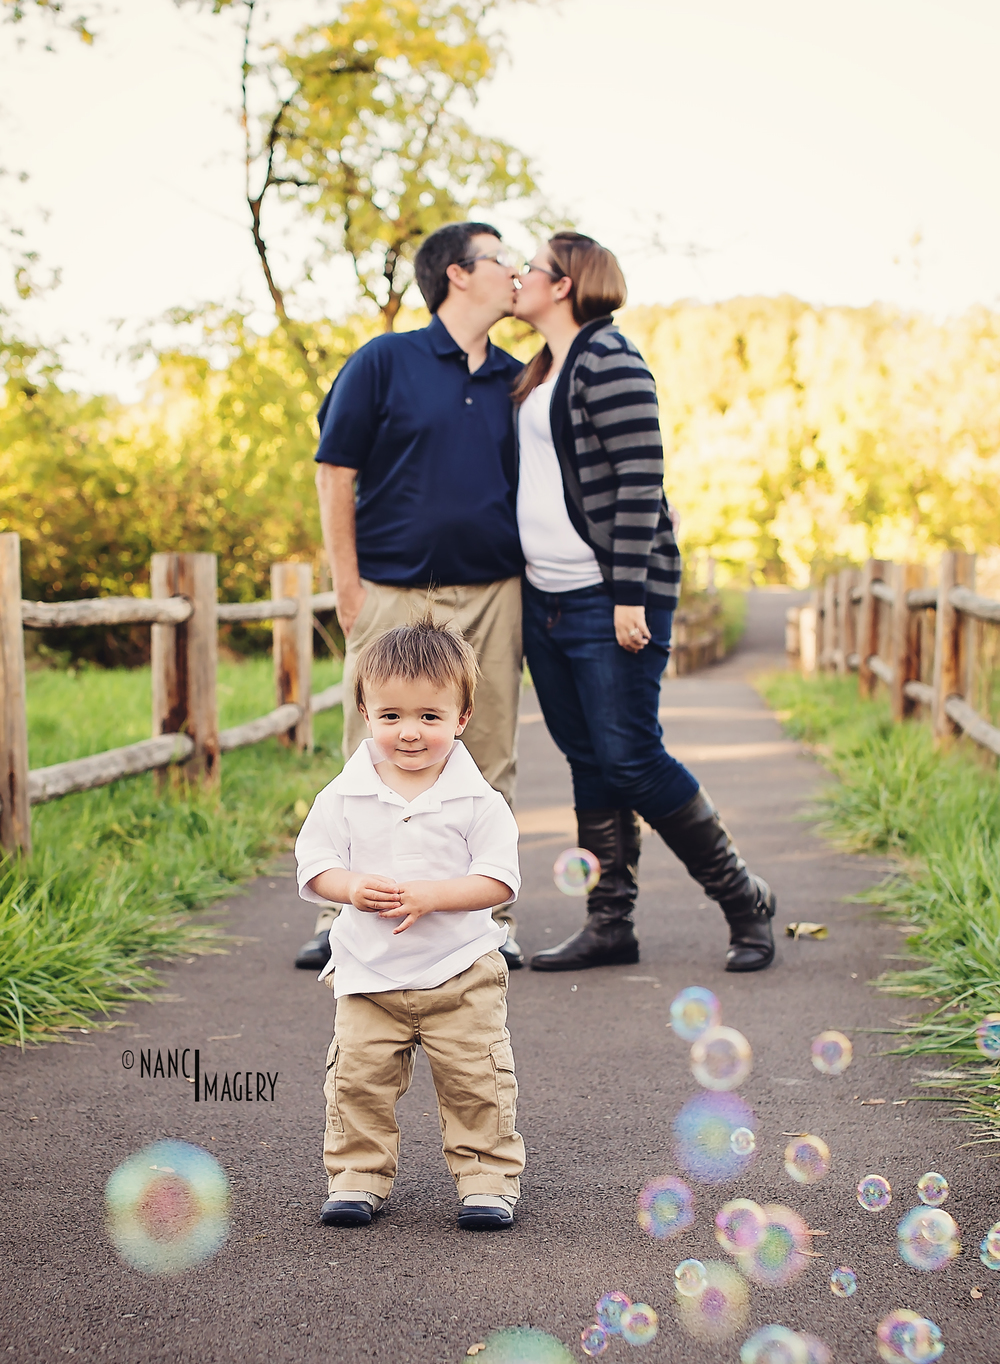 Bubbles, Nanci Imagery